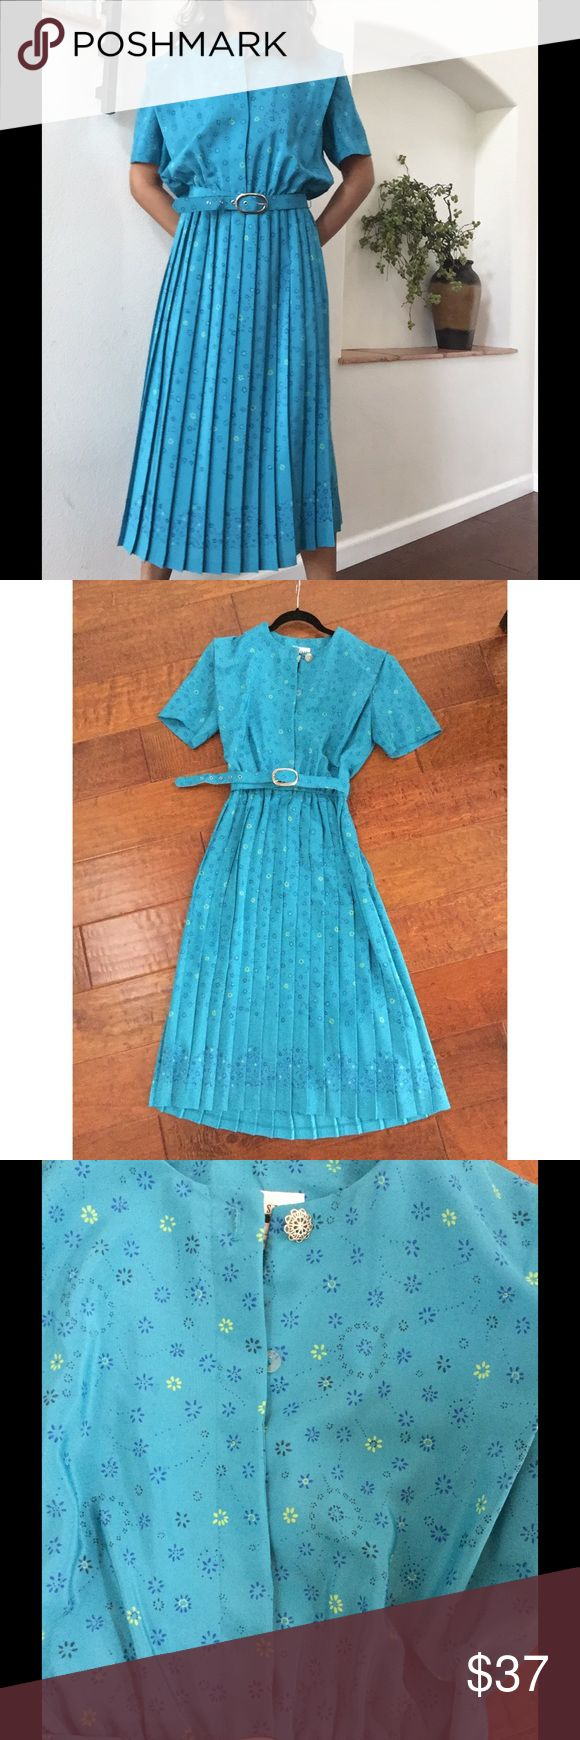 "Leslie Fay Vintage Teal, pleaded Dress This dress is an amazing shade if Teal/ turquoise. Adorable flower print. Pleats. Belt. 3 hidden buttons a the top and 1 silver button. Polyester.Measures- shoulders-18"". Sleeves- 9"". Bust- 40"" max. Waist-24-28"". Length-46"". Vintage Dresses"